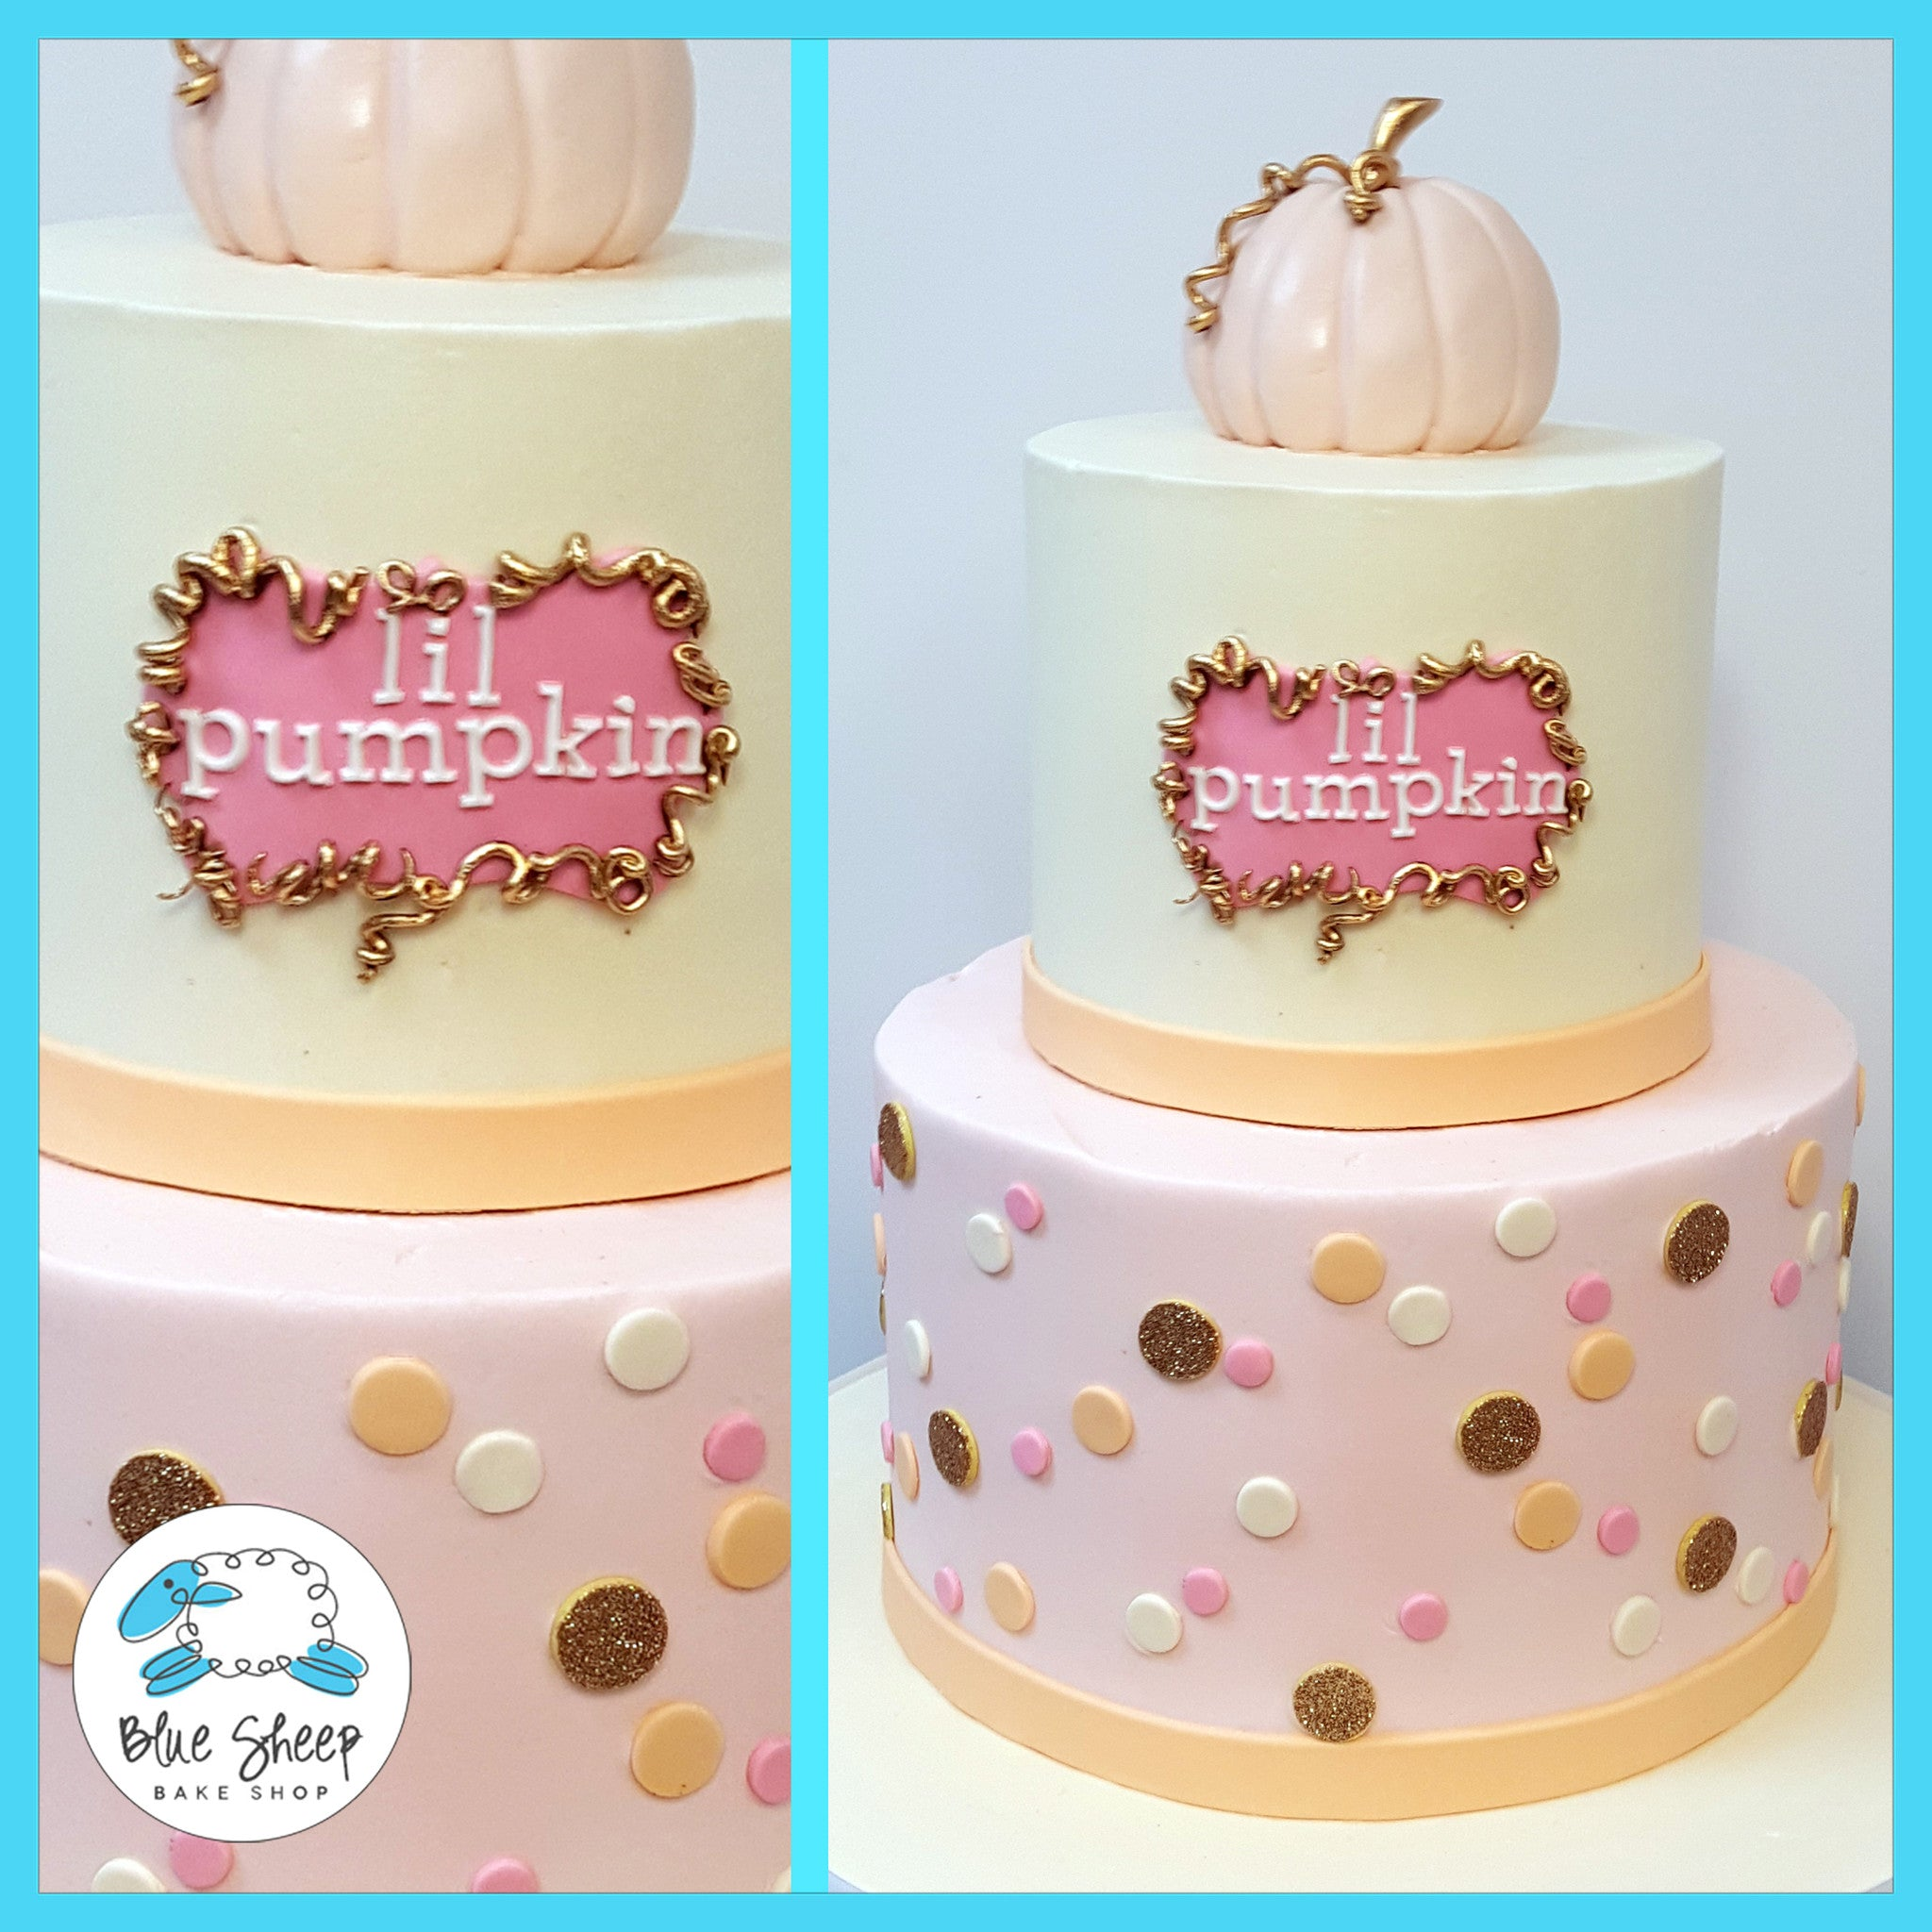 Stupendous Lil Pumpkin 1St Birthday Cake Nj Blue Sheep Bake Shop Personalised Birthday Cards Beptaeletsinfo